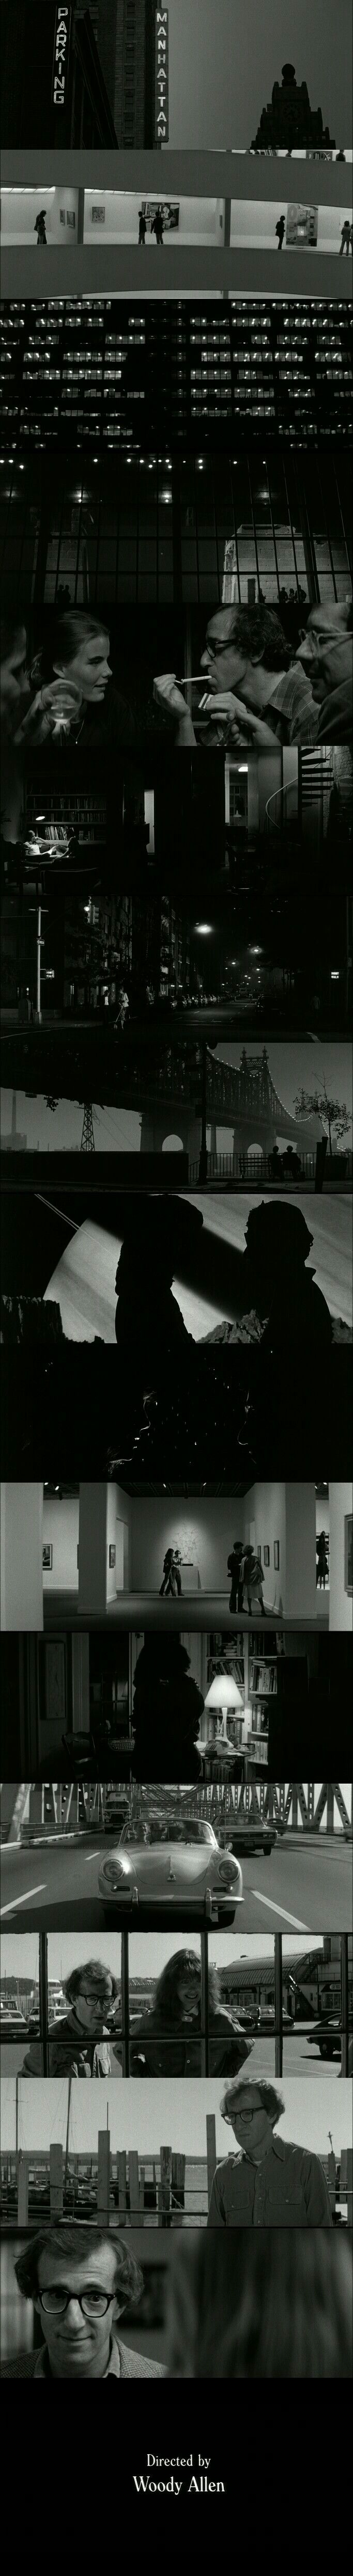 Black-white cinematography from Manhattan (1979) Directed by Woody Allen. Cinematography by Gordon Willis. Starring Woody Allen in leading role with Mariel Hemingway, Diane Keaton and Meryl Steep in supporting roles.